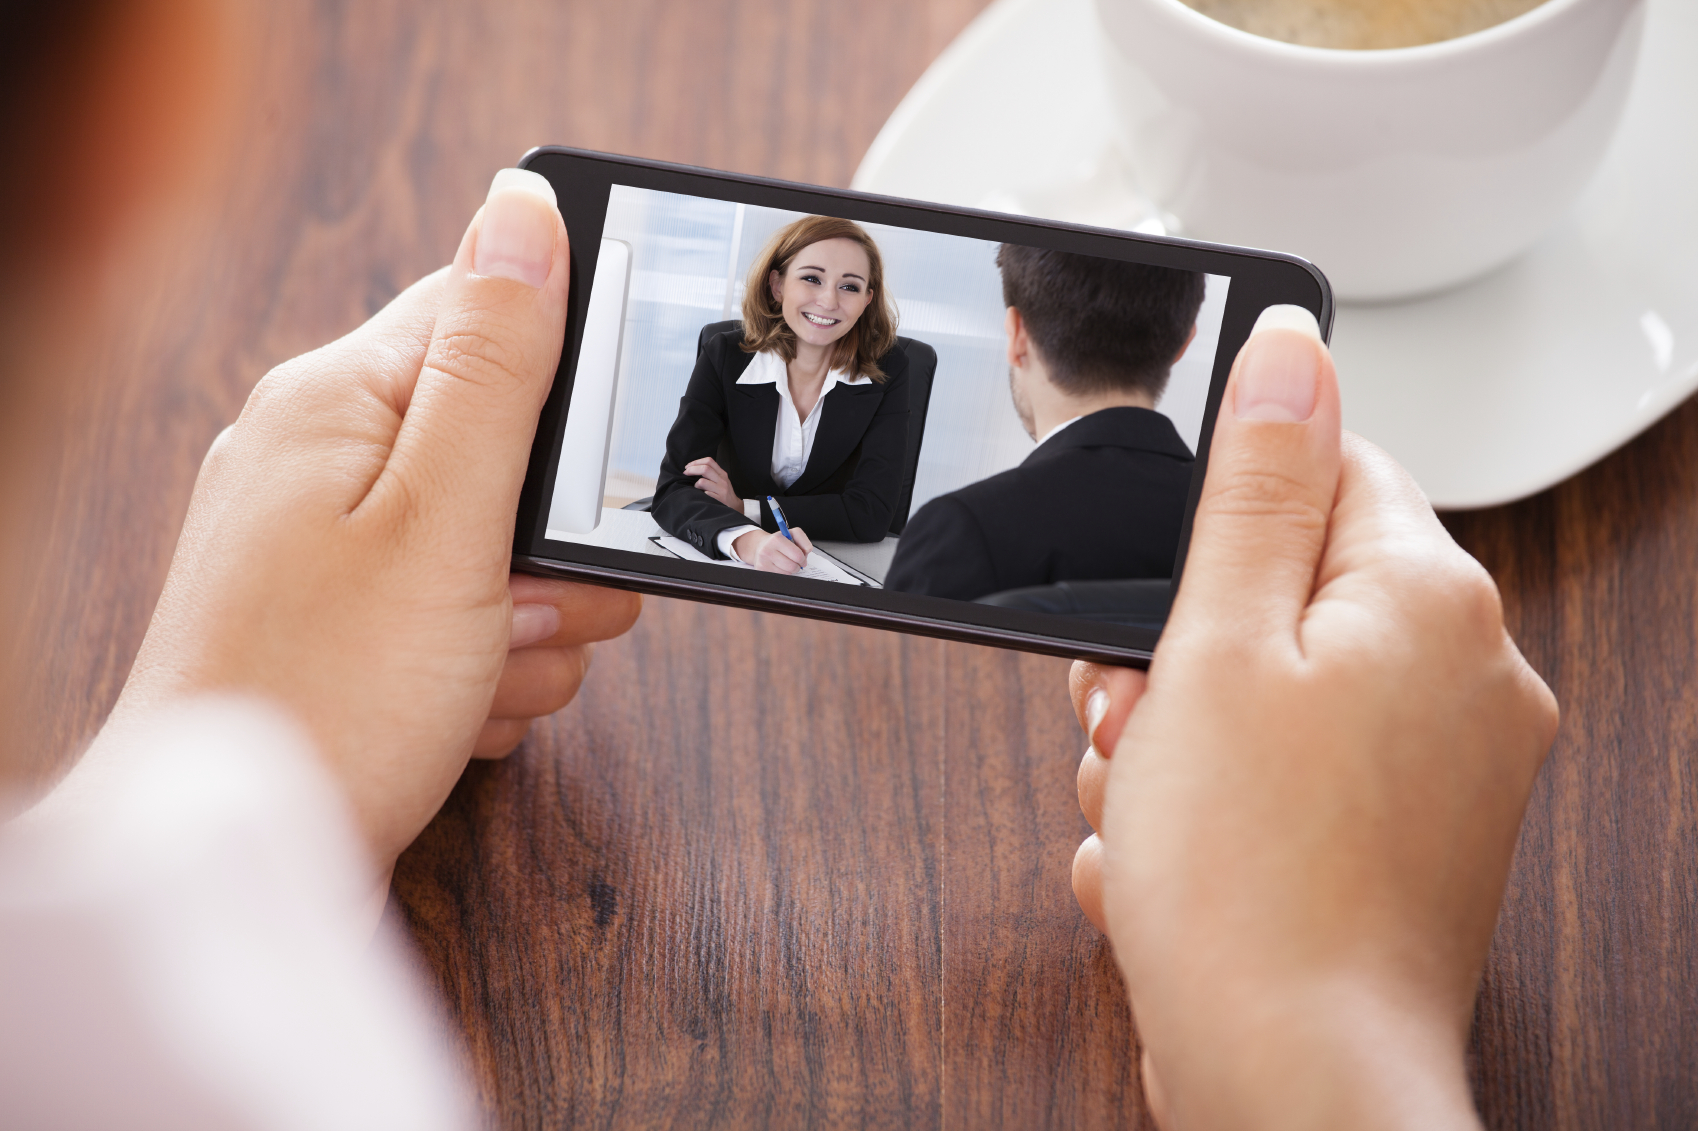 Watching a training video on a mobile phone